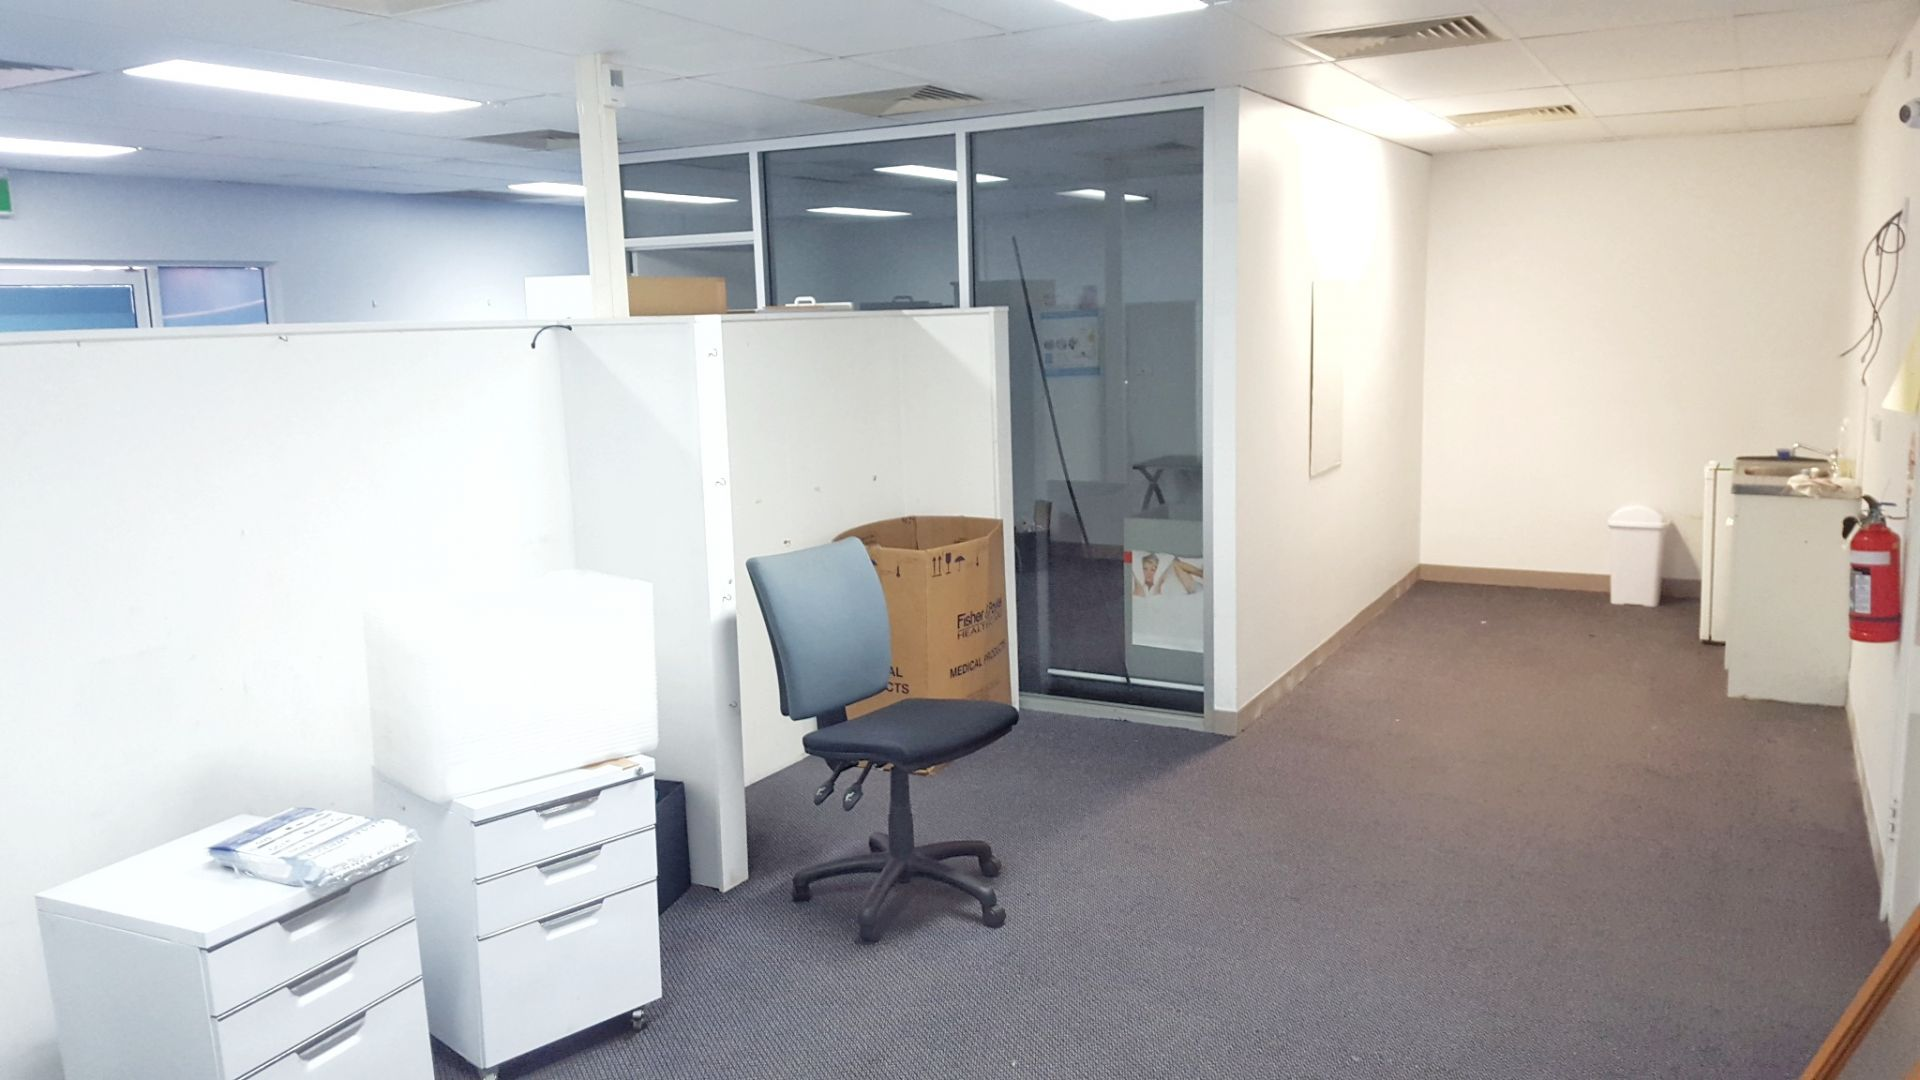 Sublease Opportunity in the heart of Chermside